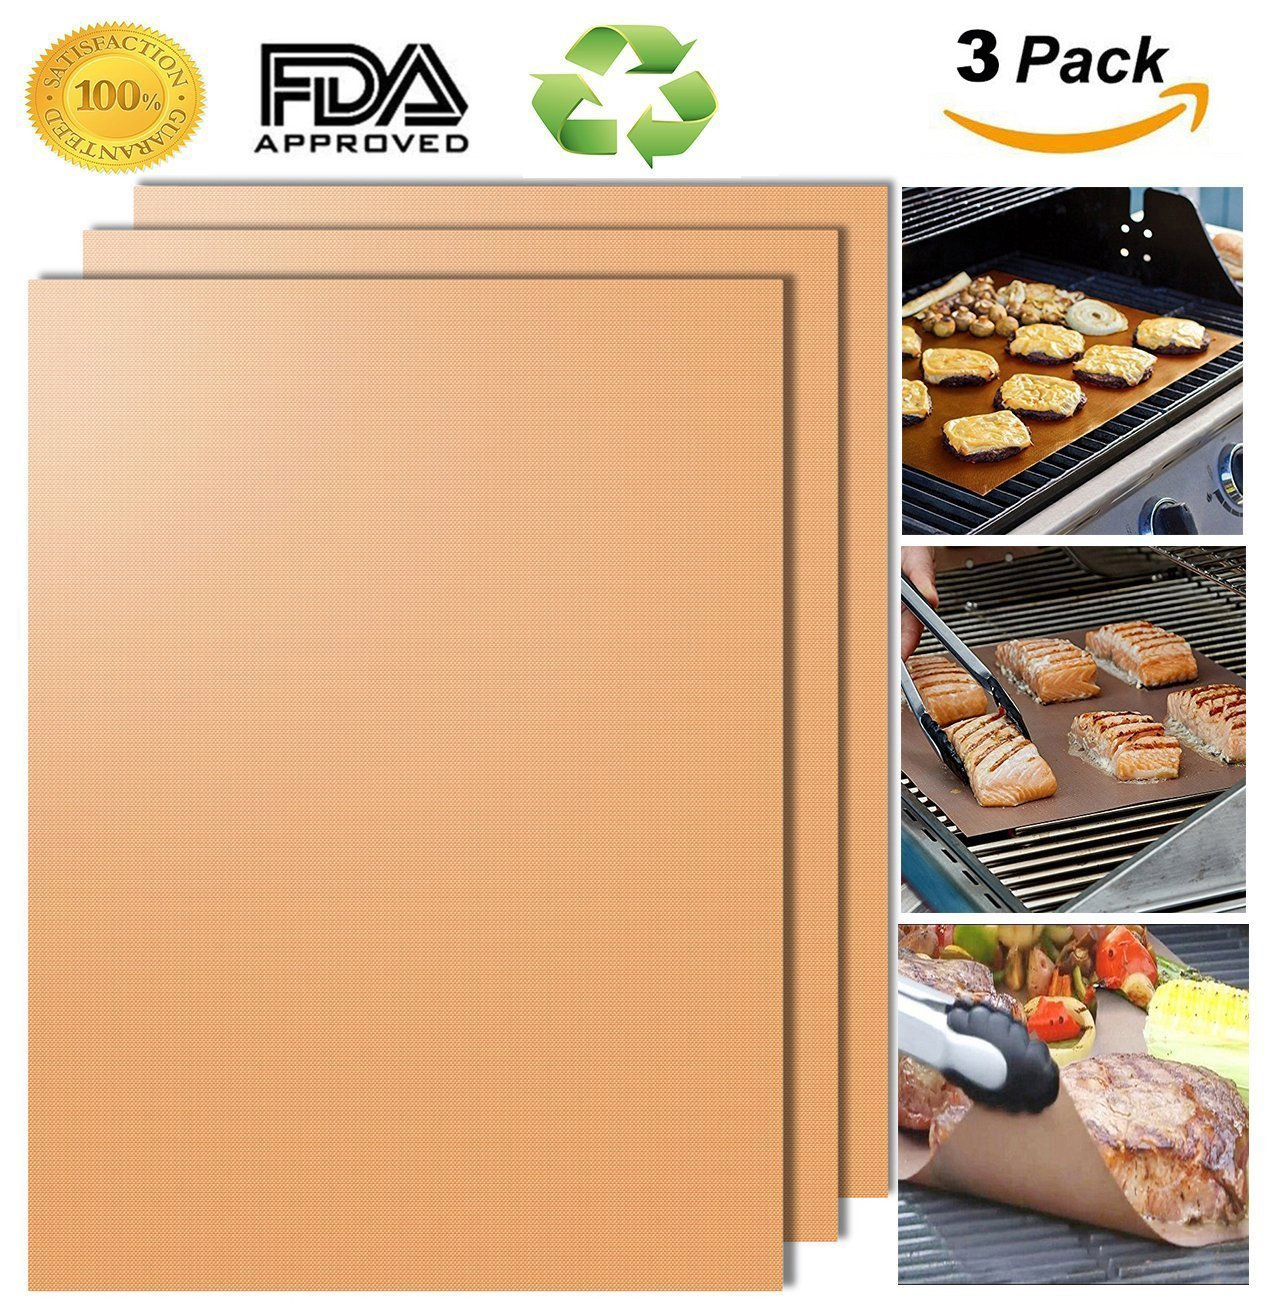 Hiistaring Grill Trays, Set of 3 – 100% Non-Stick BBQ Grill and Baking Mats – FDA Approved, PFOA Free, Reusable and easy to clean – works on, Charcoal, Electric BBQ Grill and more – 1/2 x 13